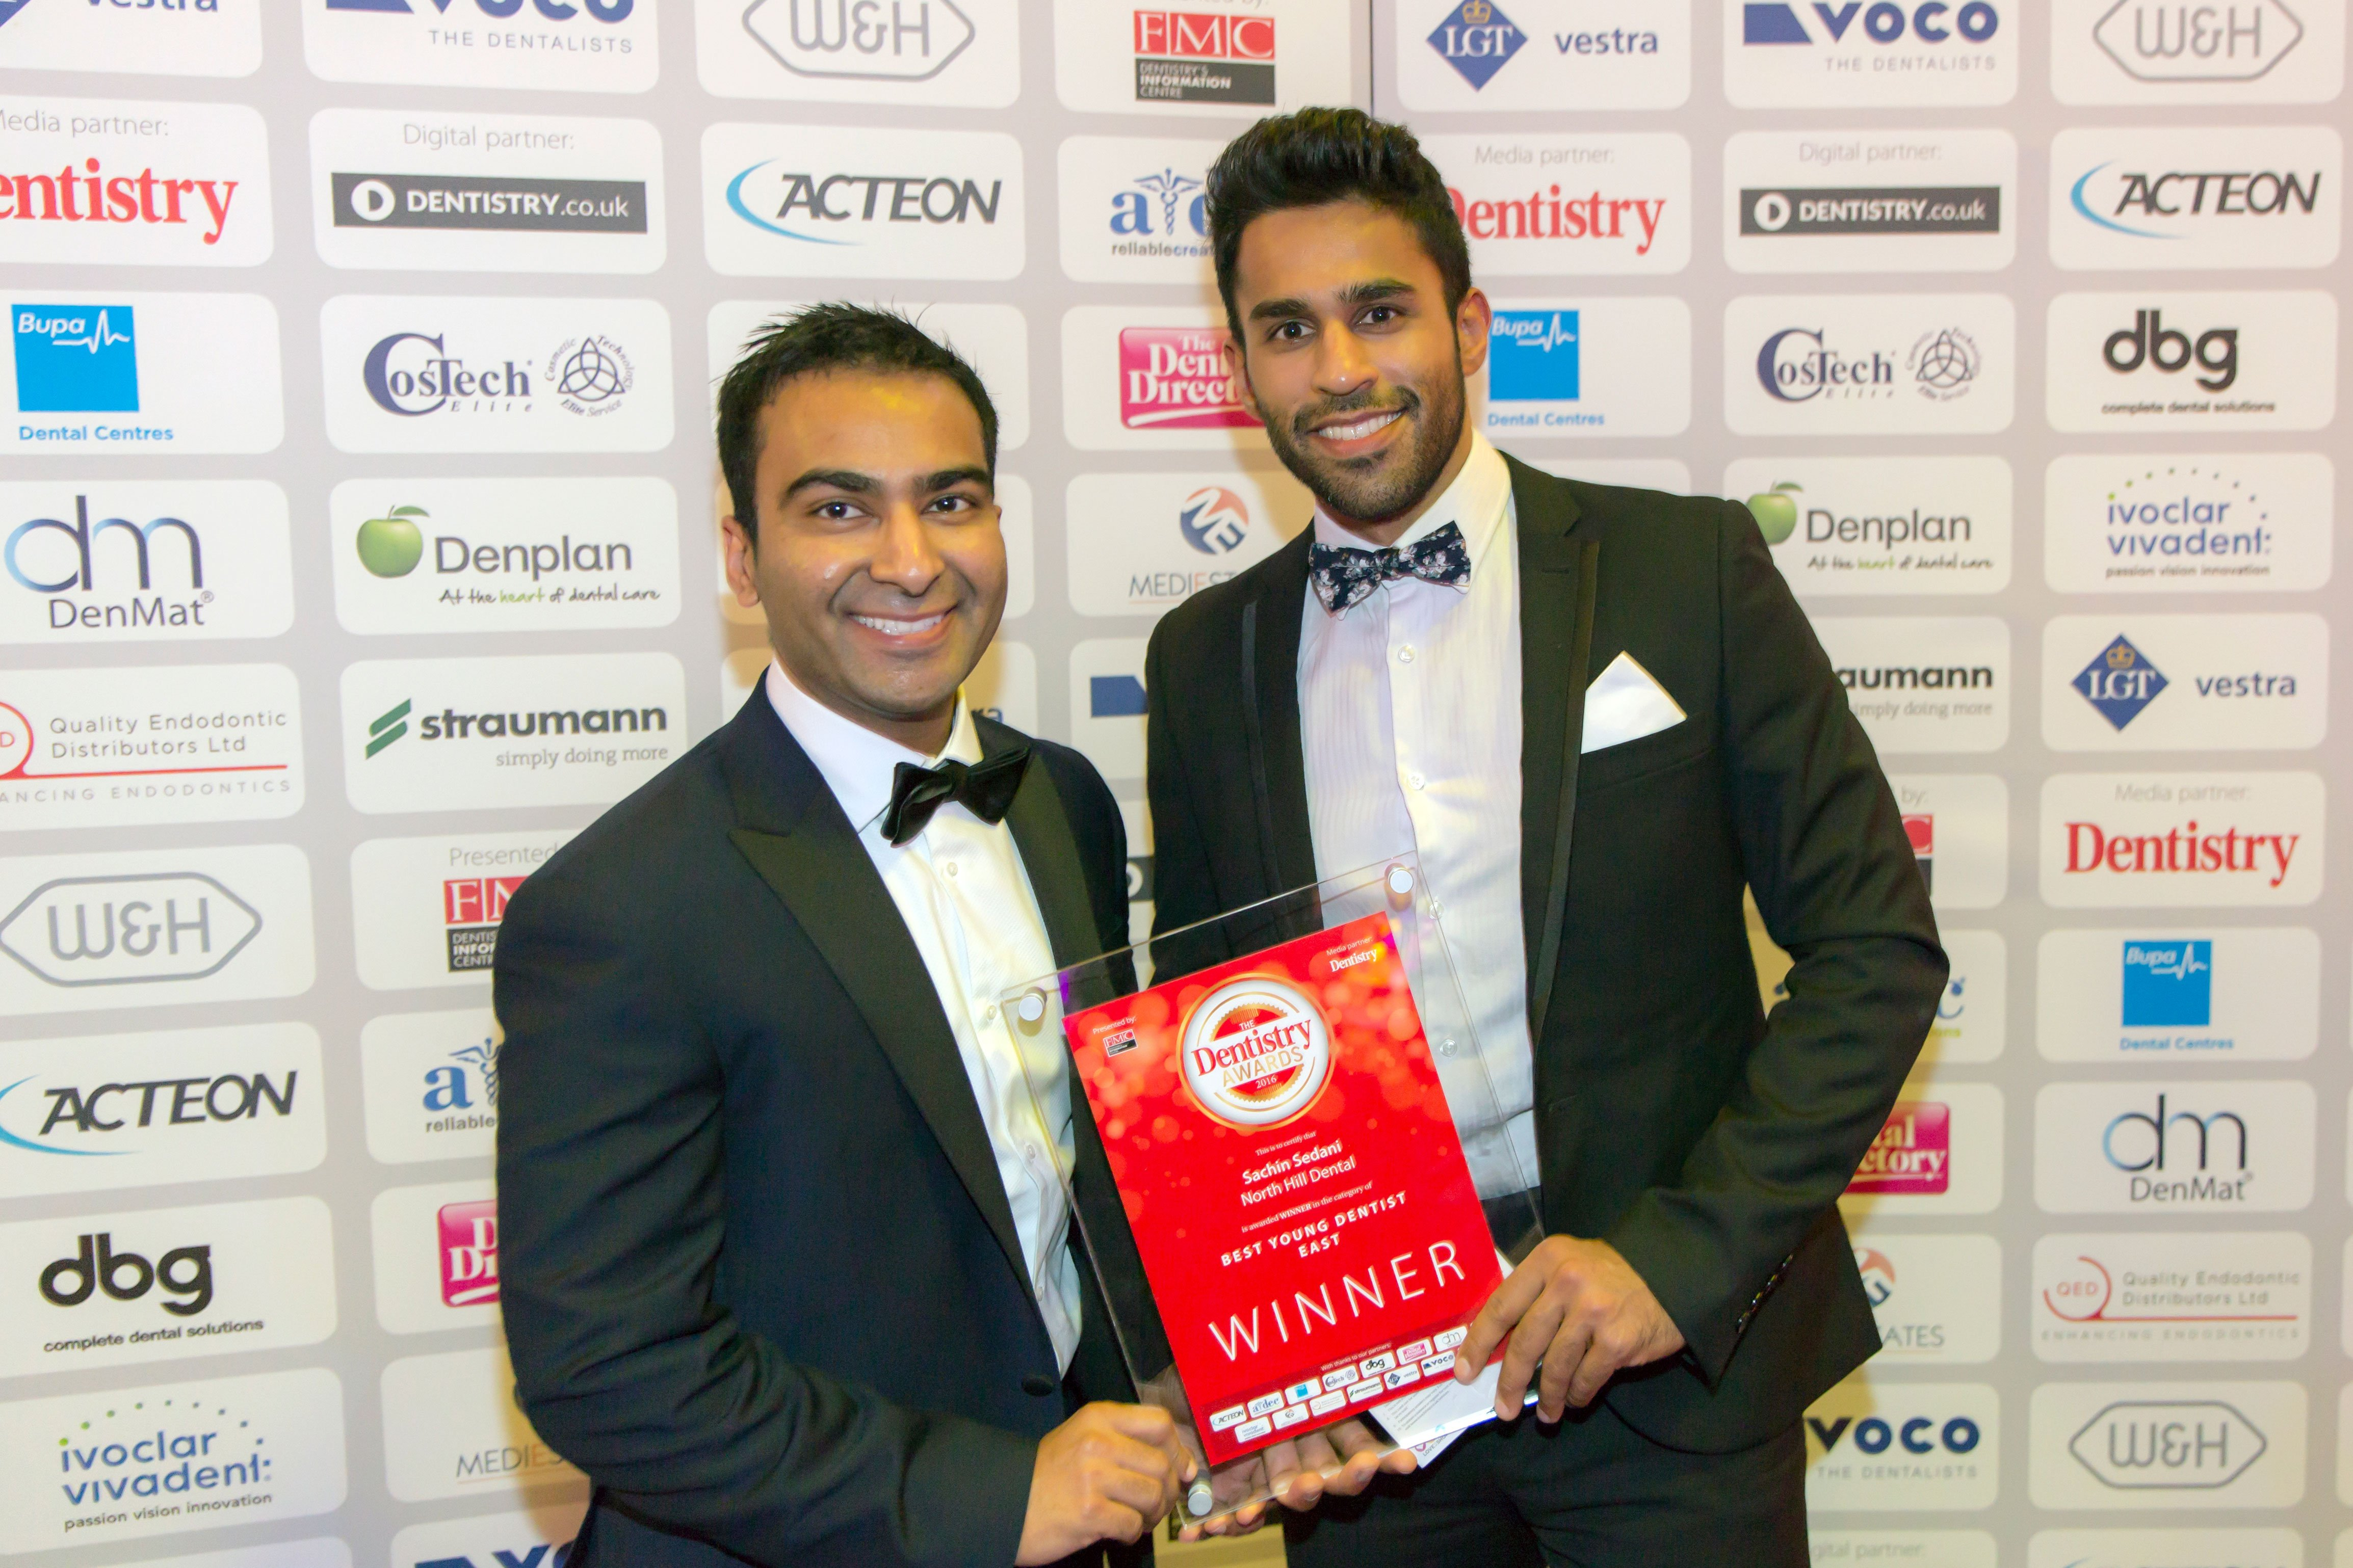 Colchester dental practice off to a winning start following awards success